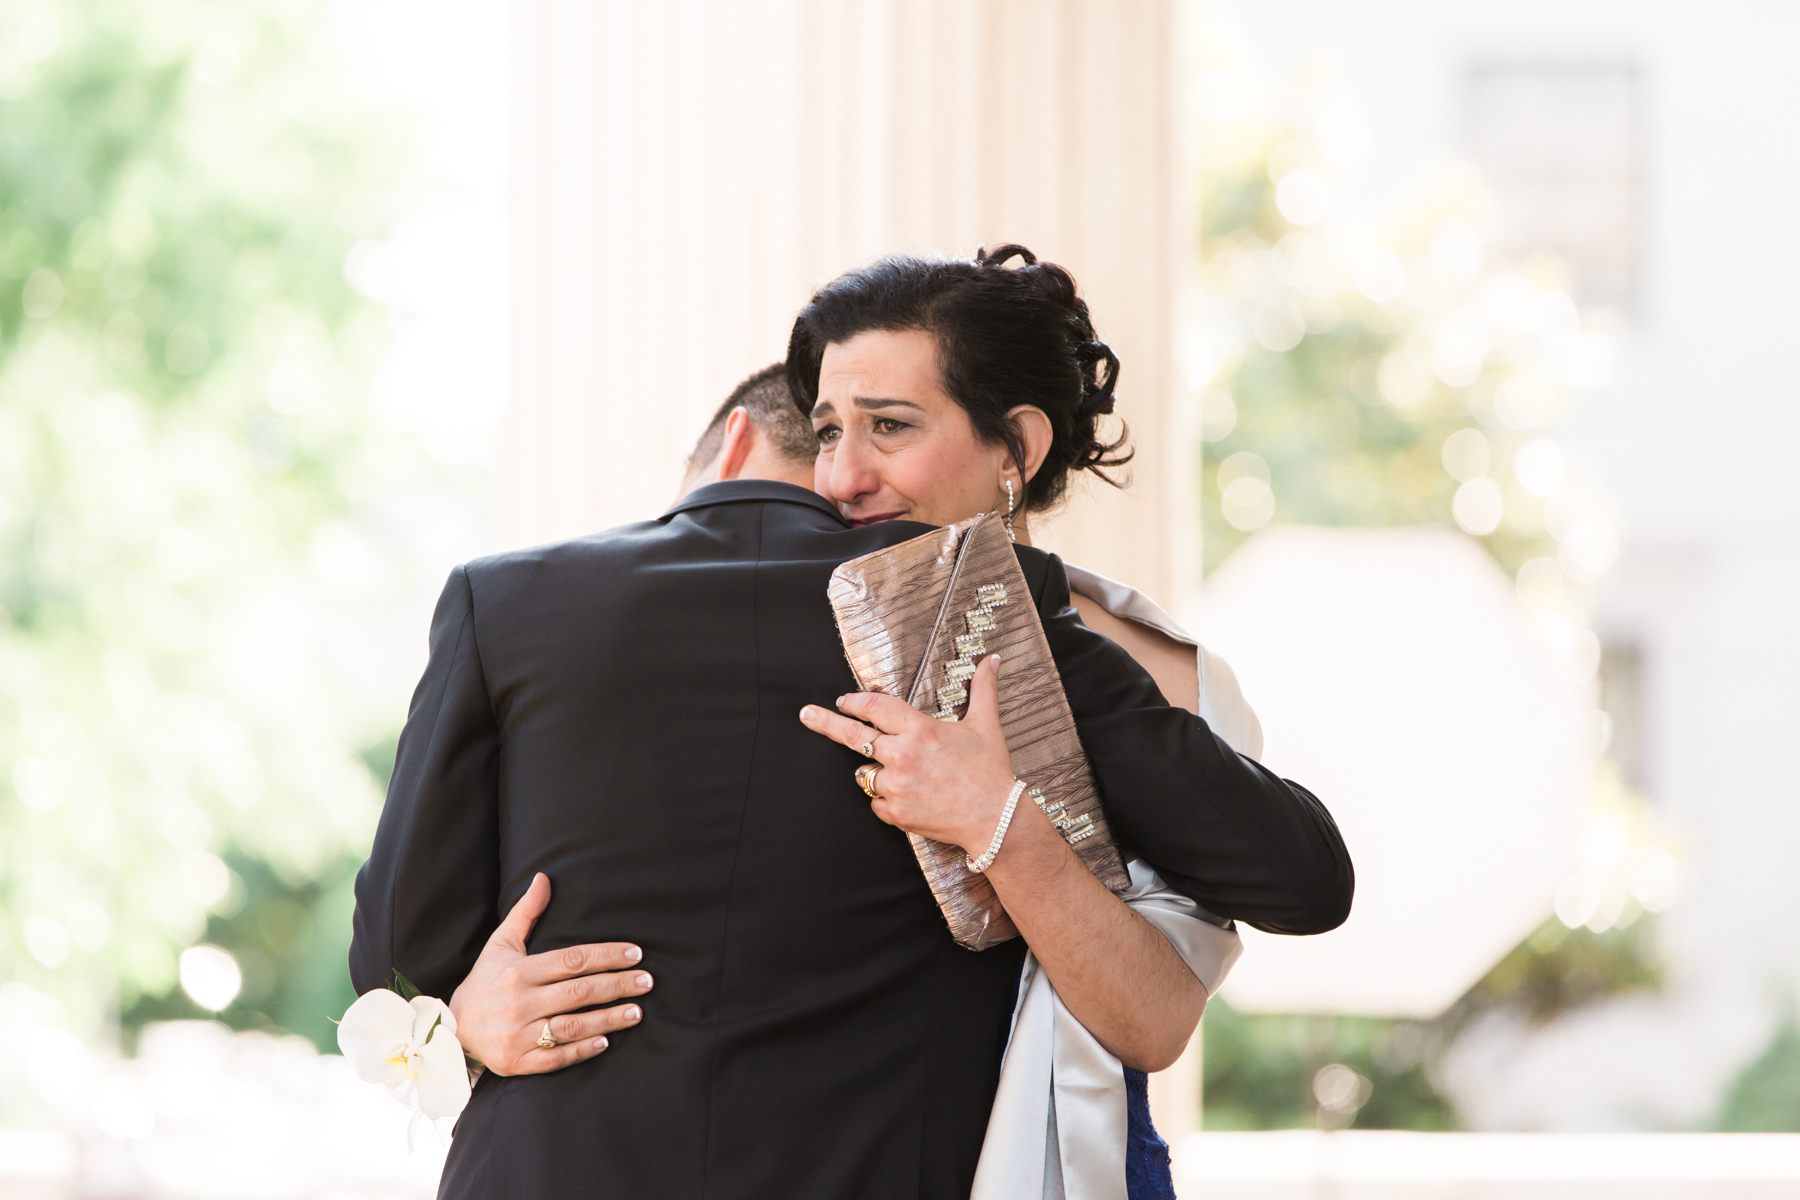 DAR-Wedding-DC-Vnessphotography-42.JPG